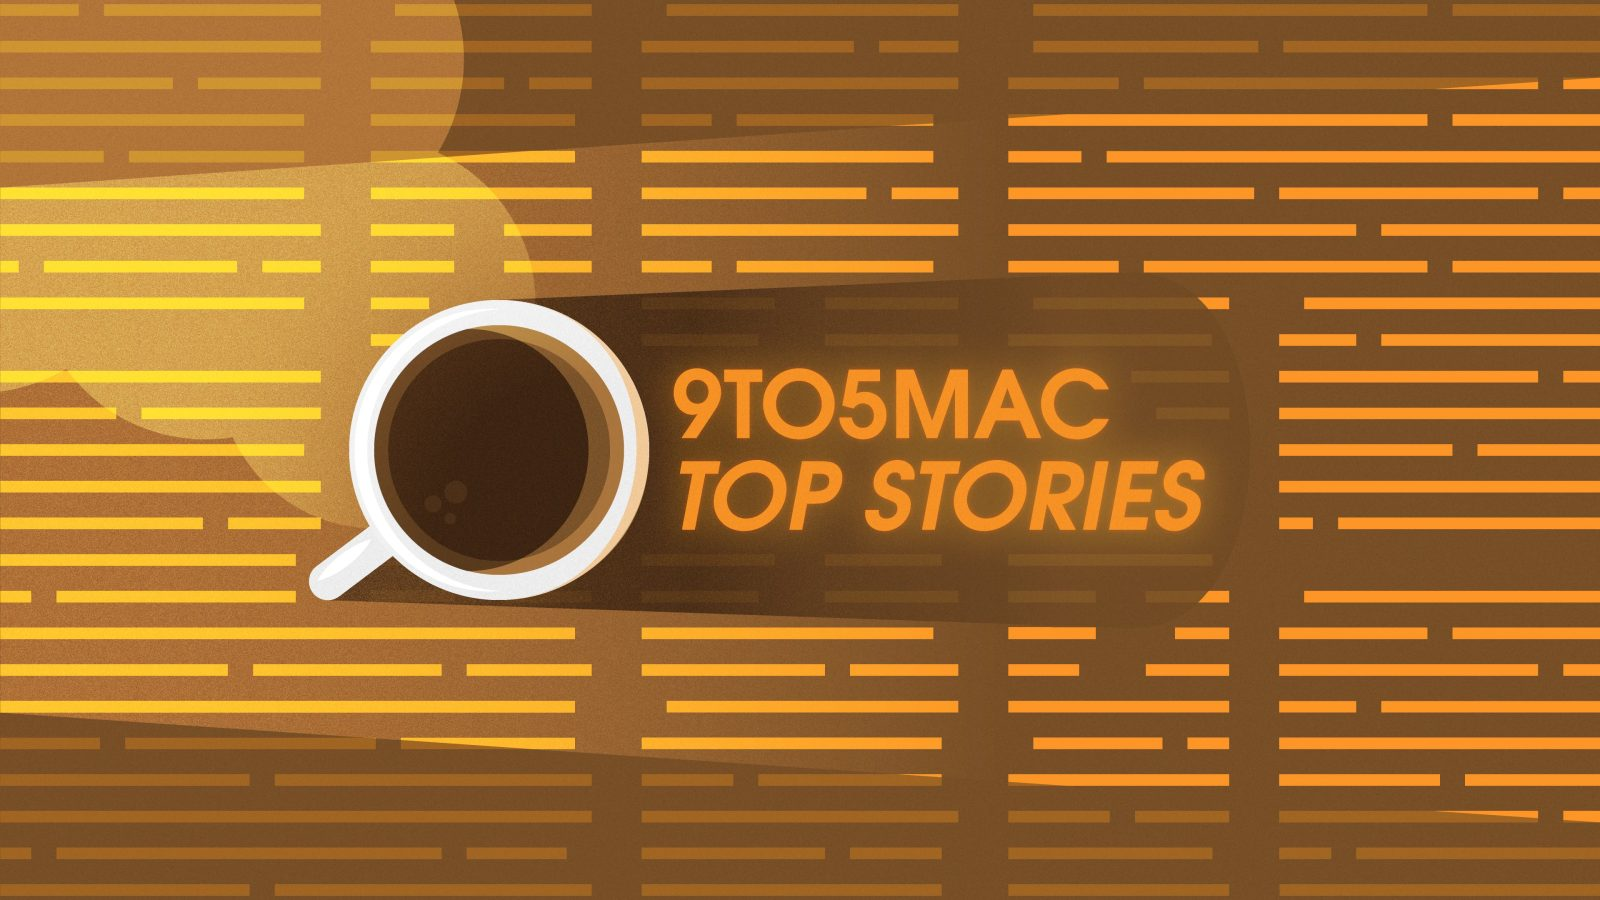 This week's top stories: 2020 iPad Pro rumors, Apple Watch rewards, iCloud encryption, more